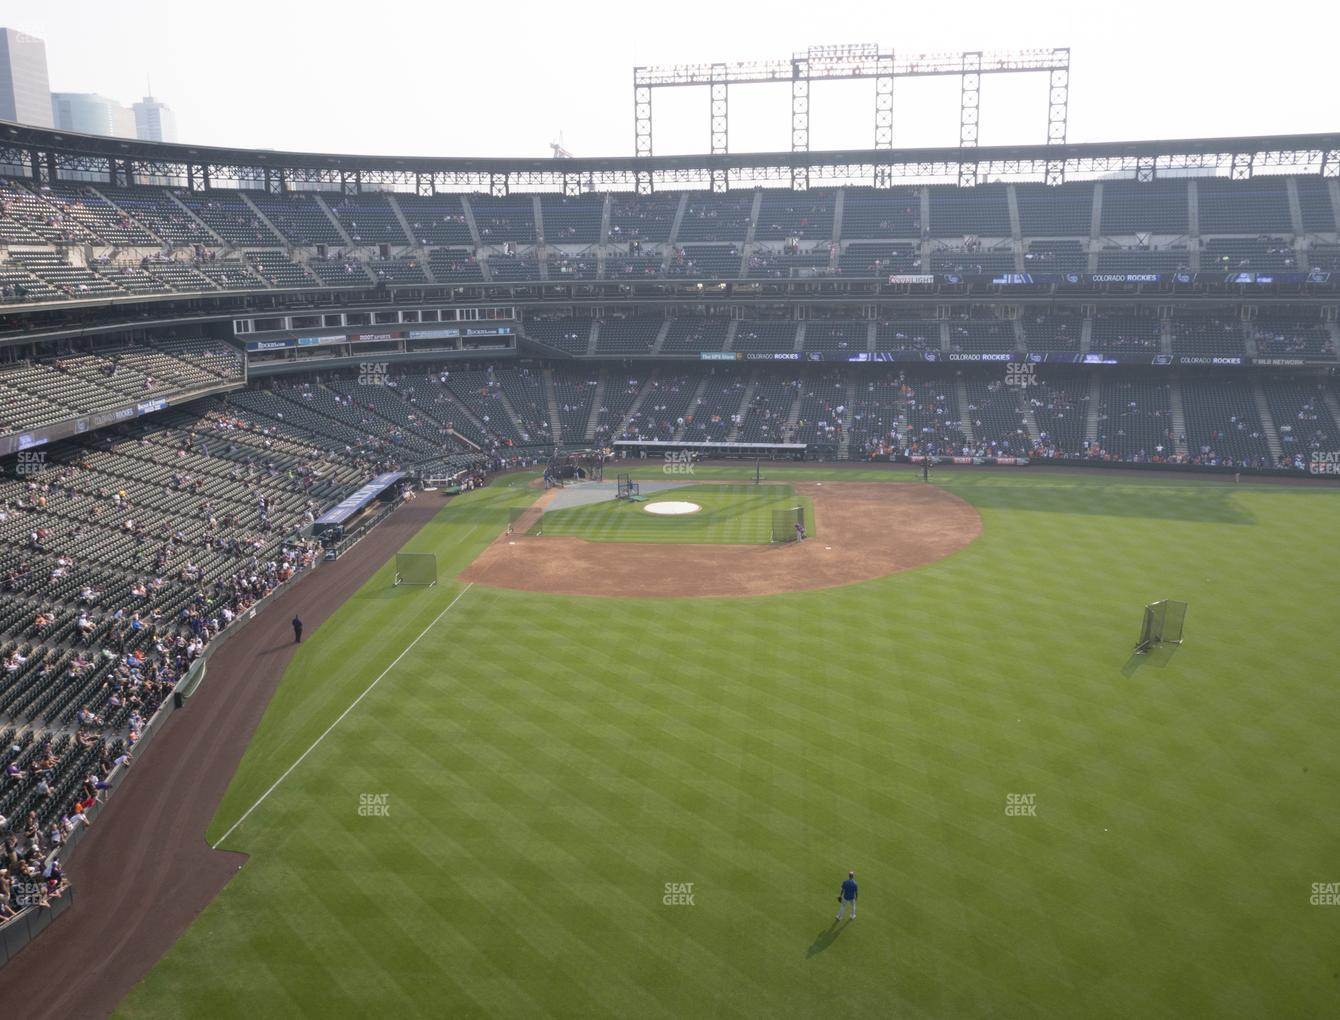 Colorado Rockies at Coors Field Lower 306 View